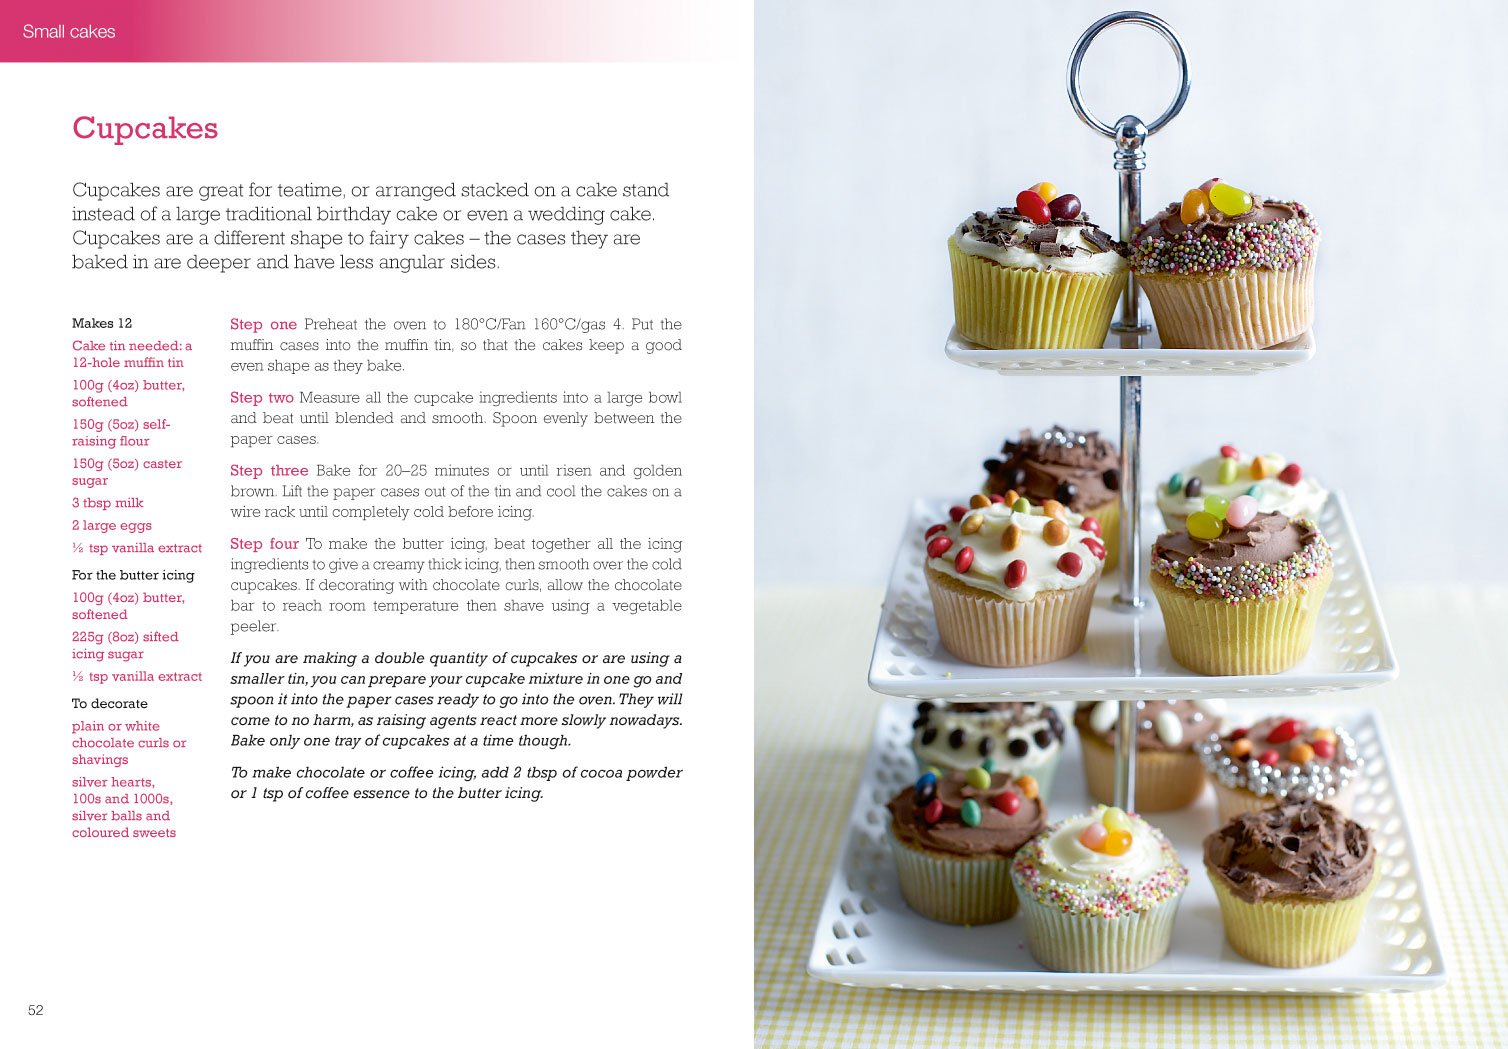 My Kitchen Table: 100 Cakes and Bakes Summary